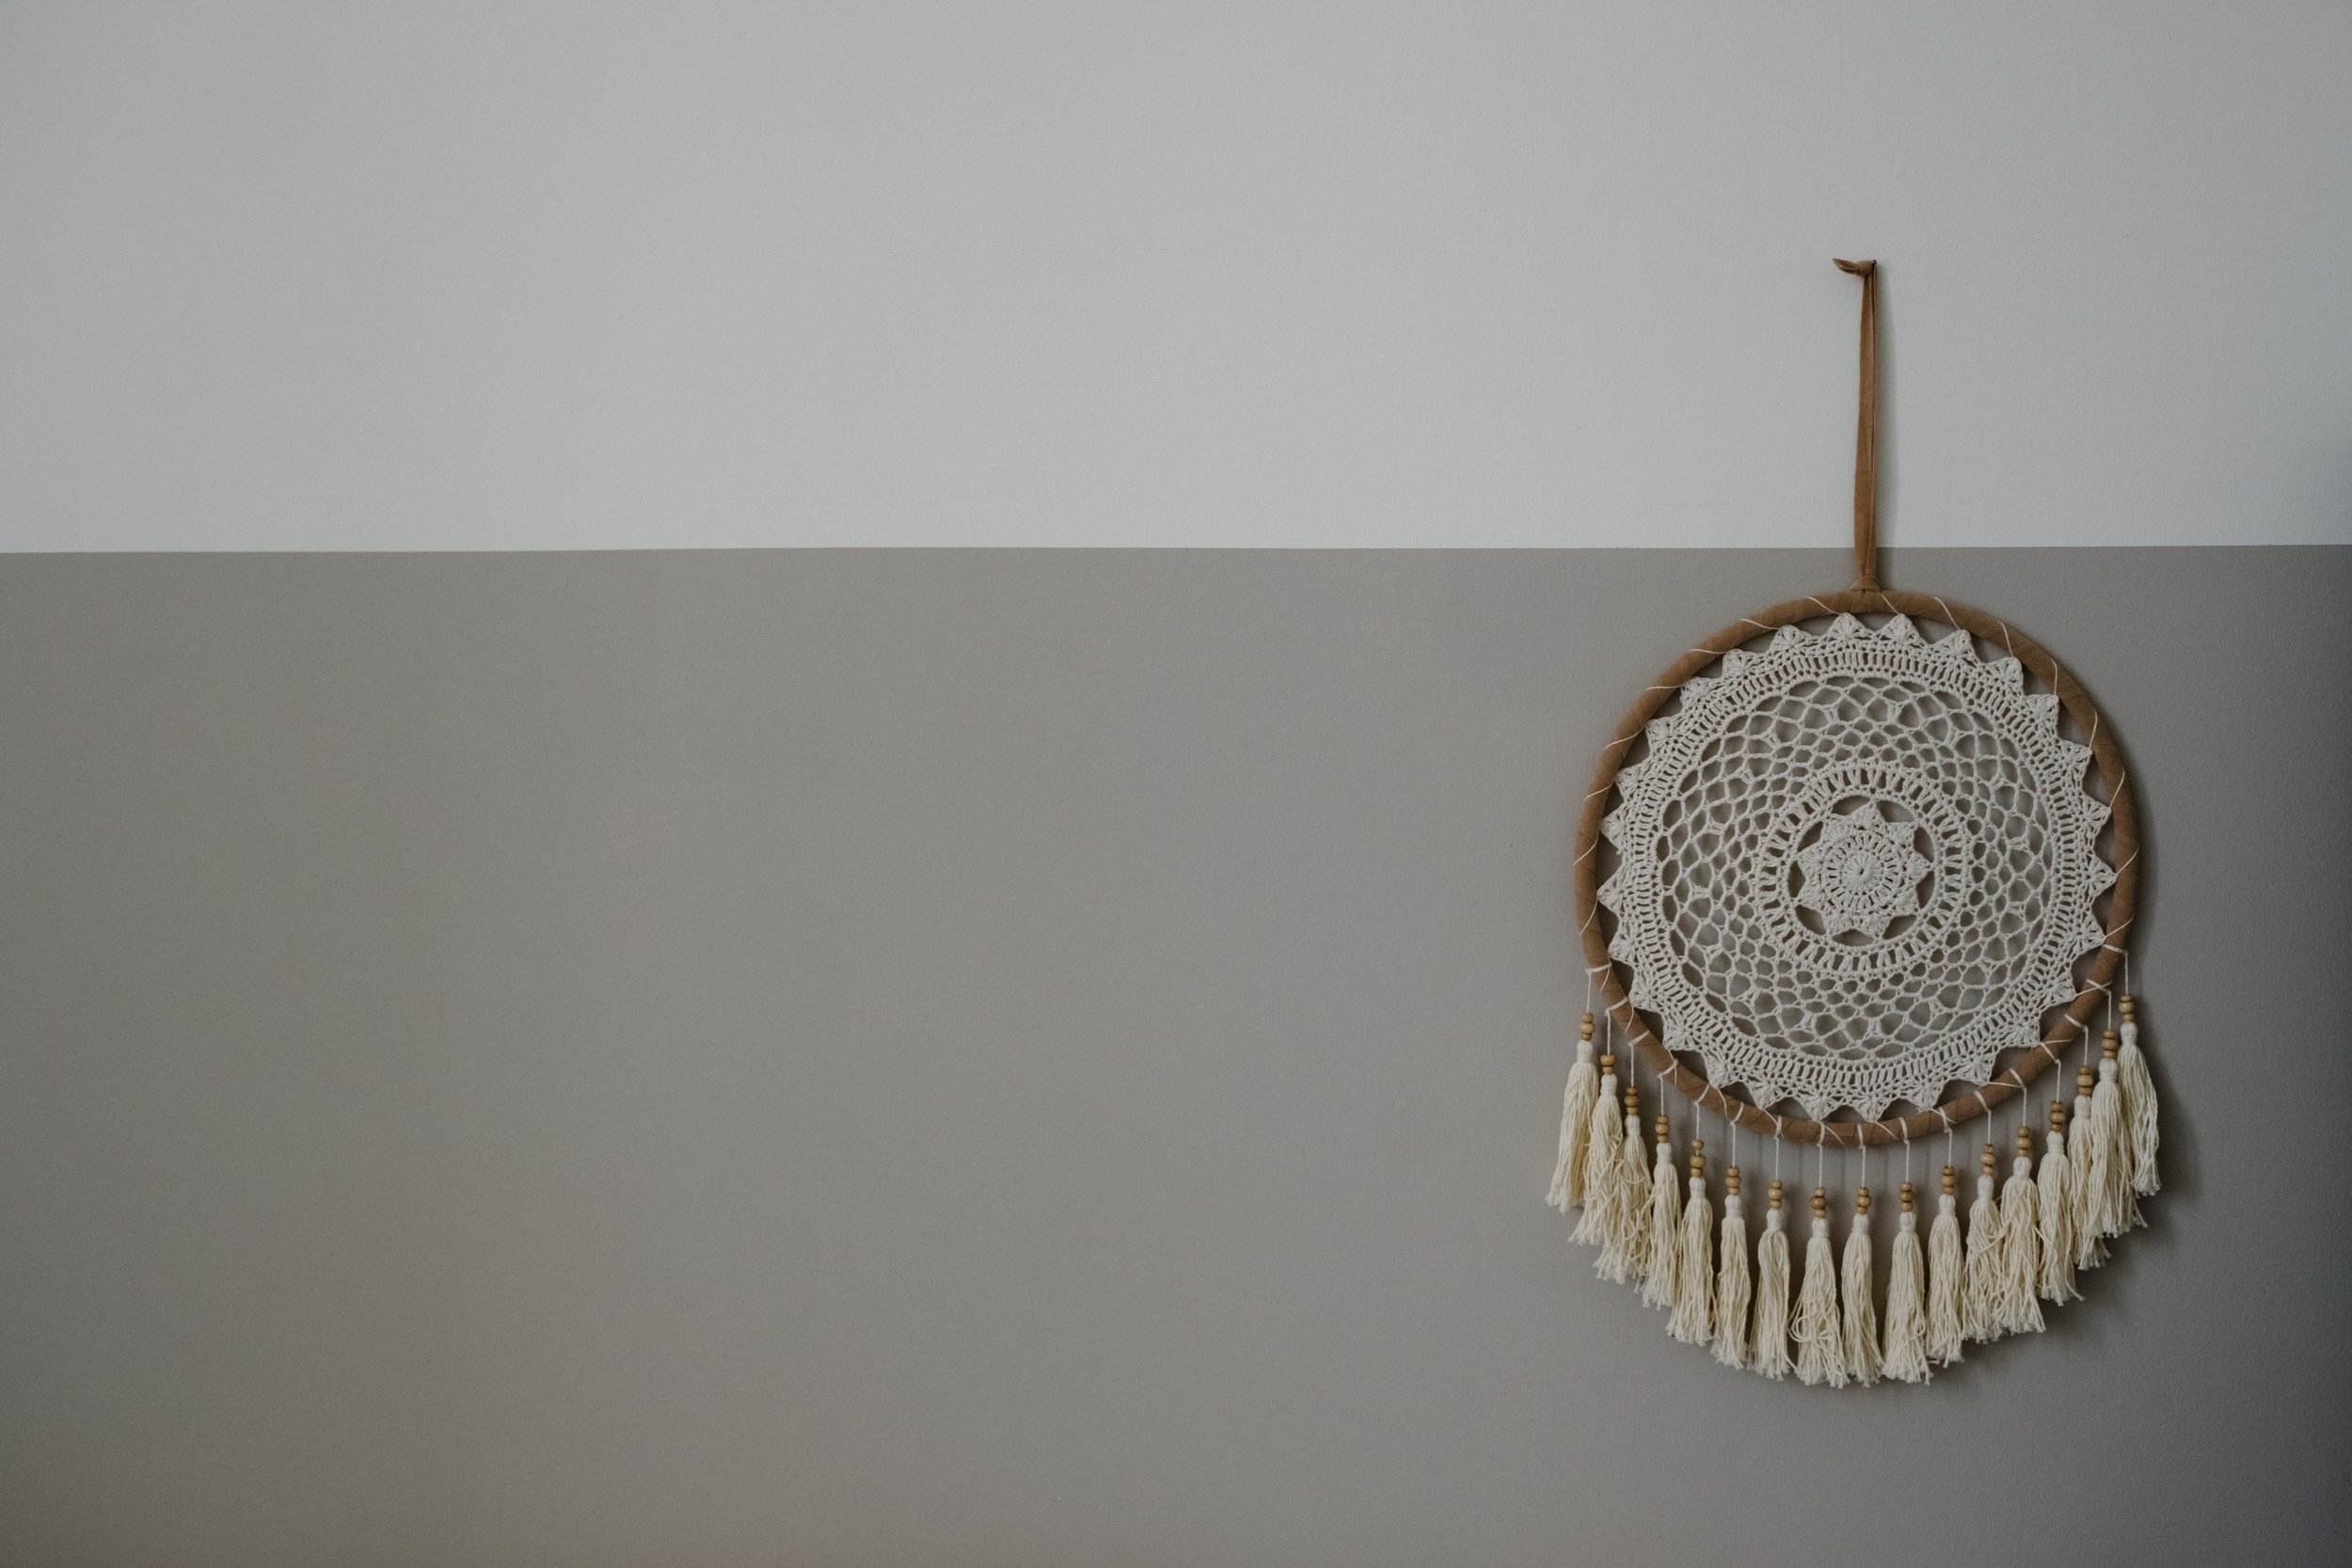 A dream catcher hangs on the wall of a baby's nursery.